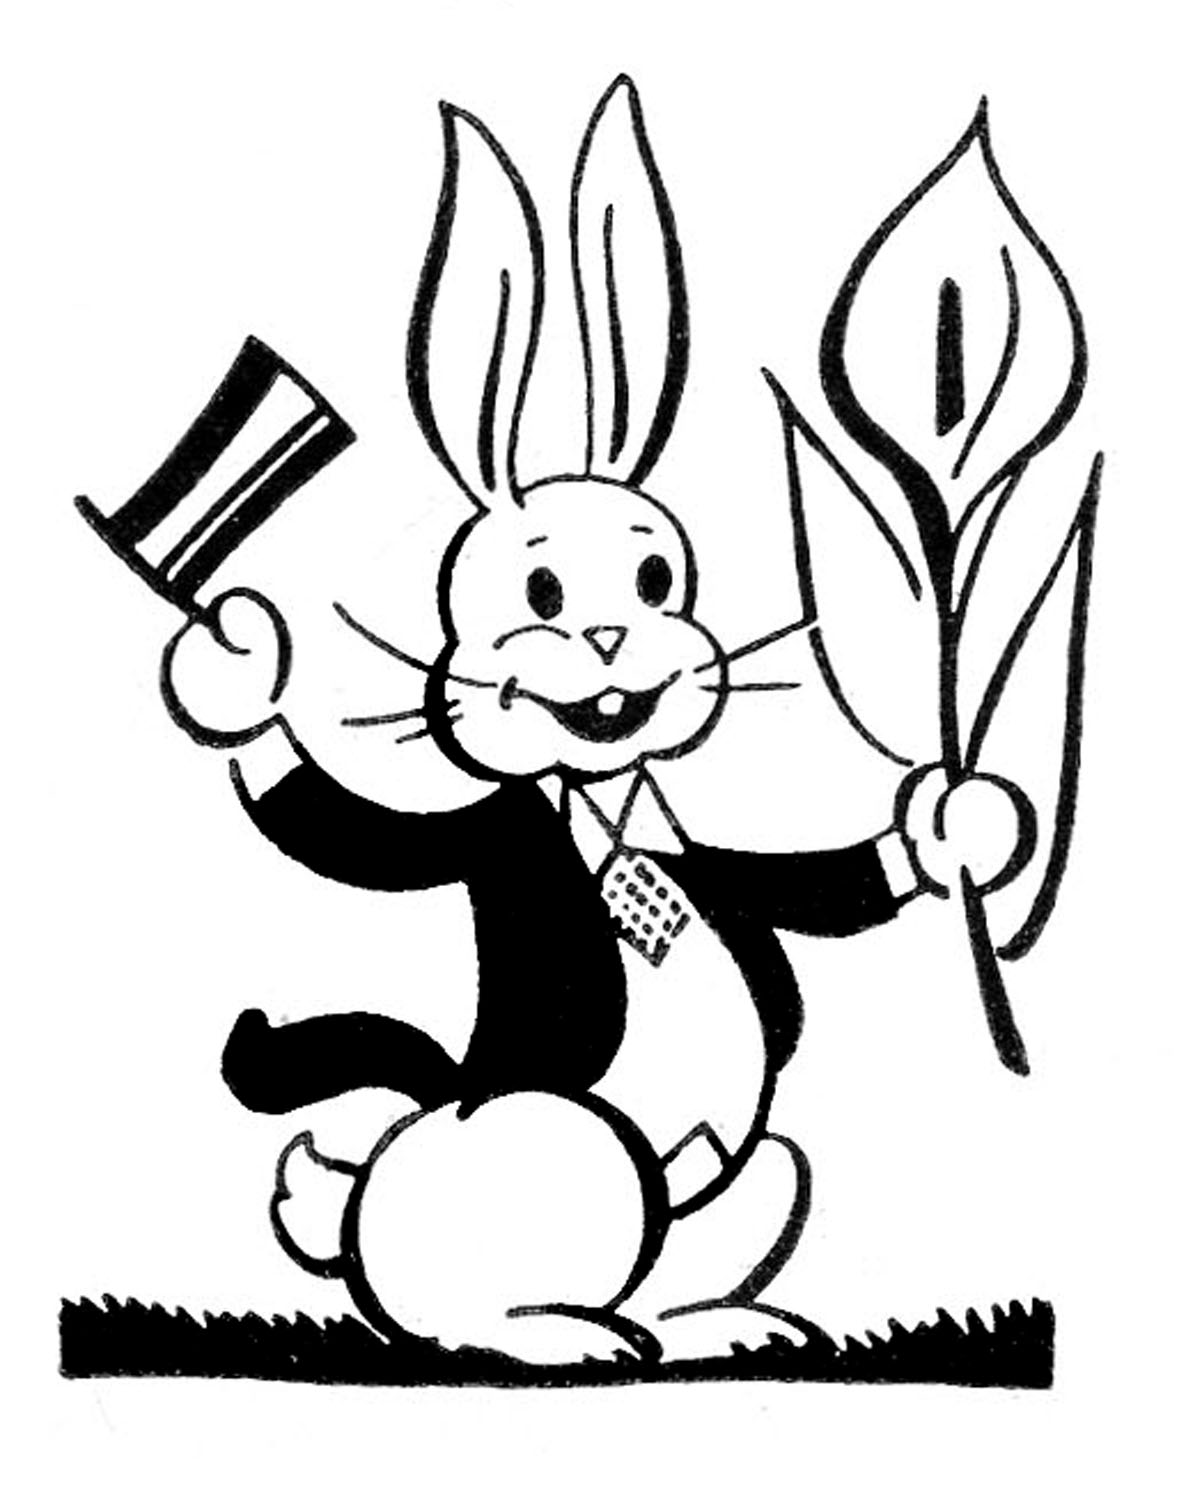 Top Hat clipart retro Easter The Images Retro Bunny